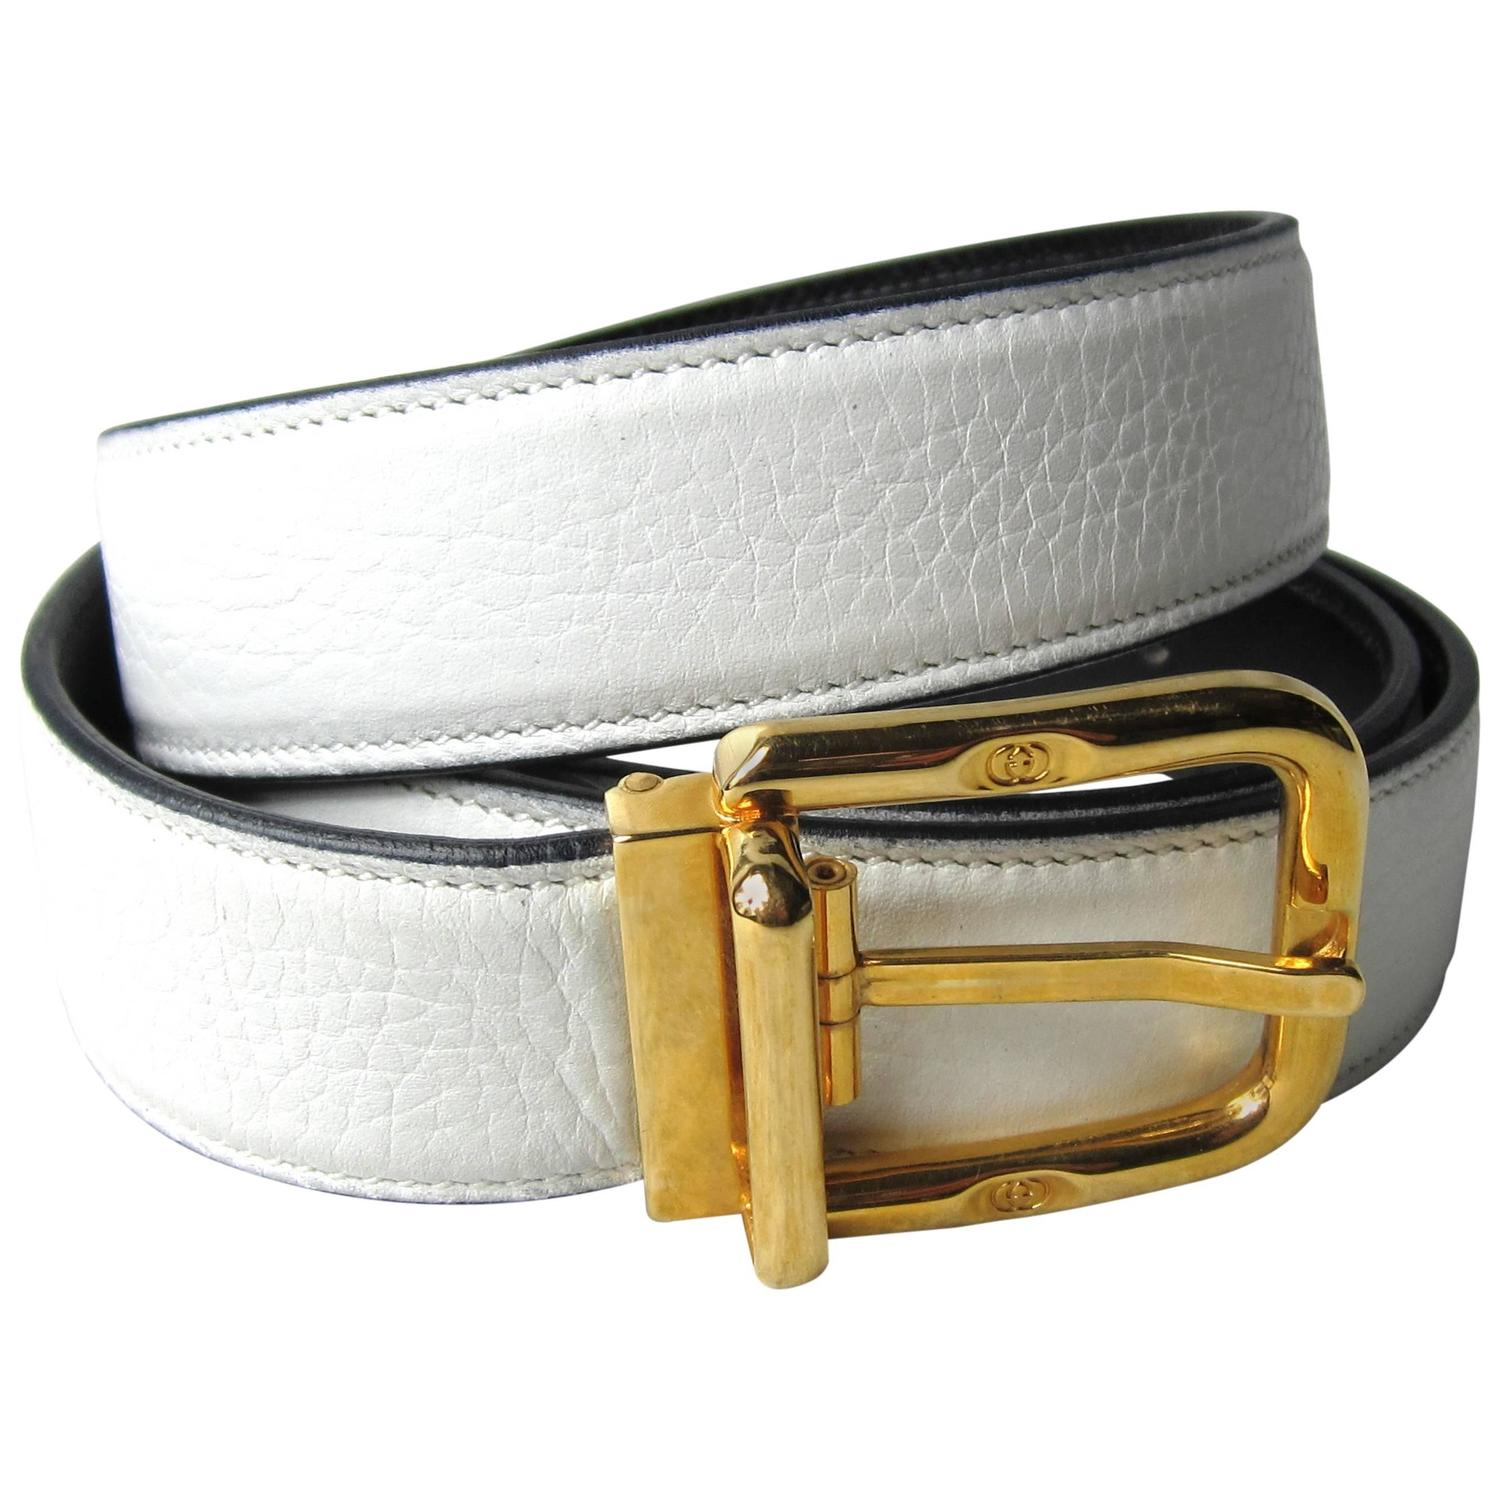 Expandable Furniture Gucci Belt White Leather Signature Buckle New Old Stock